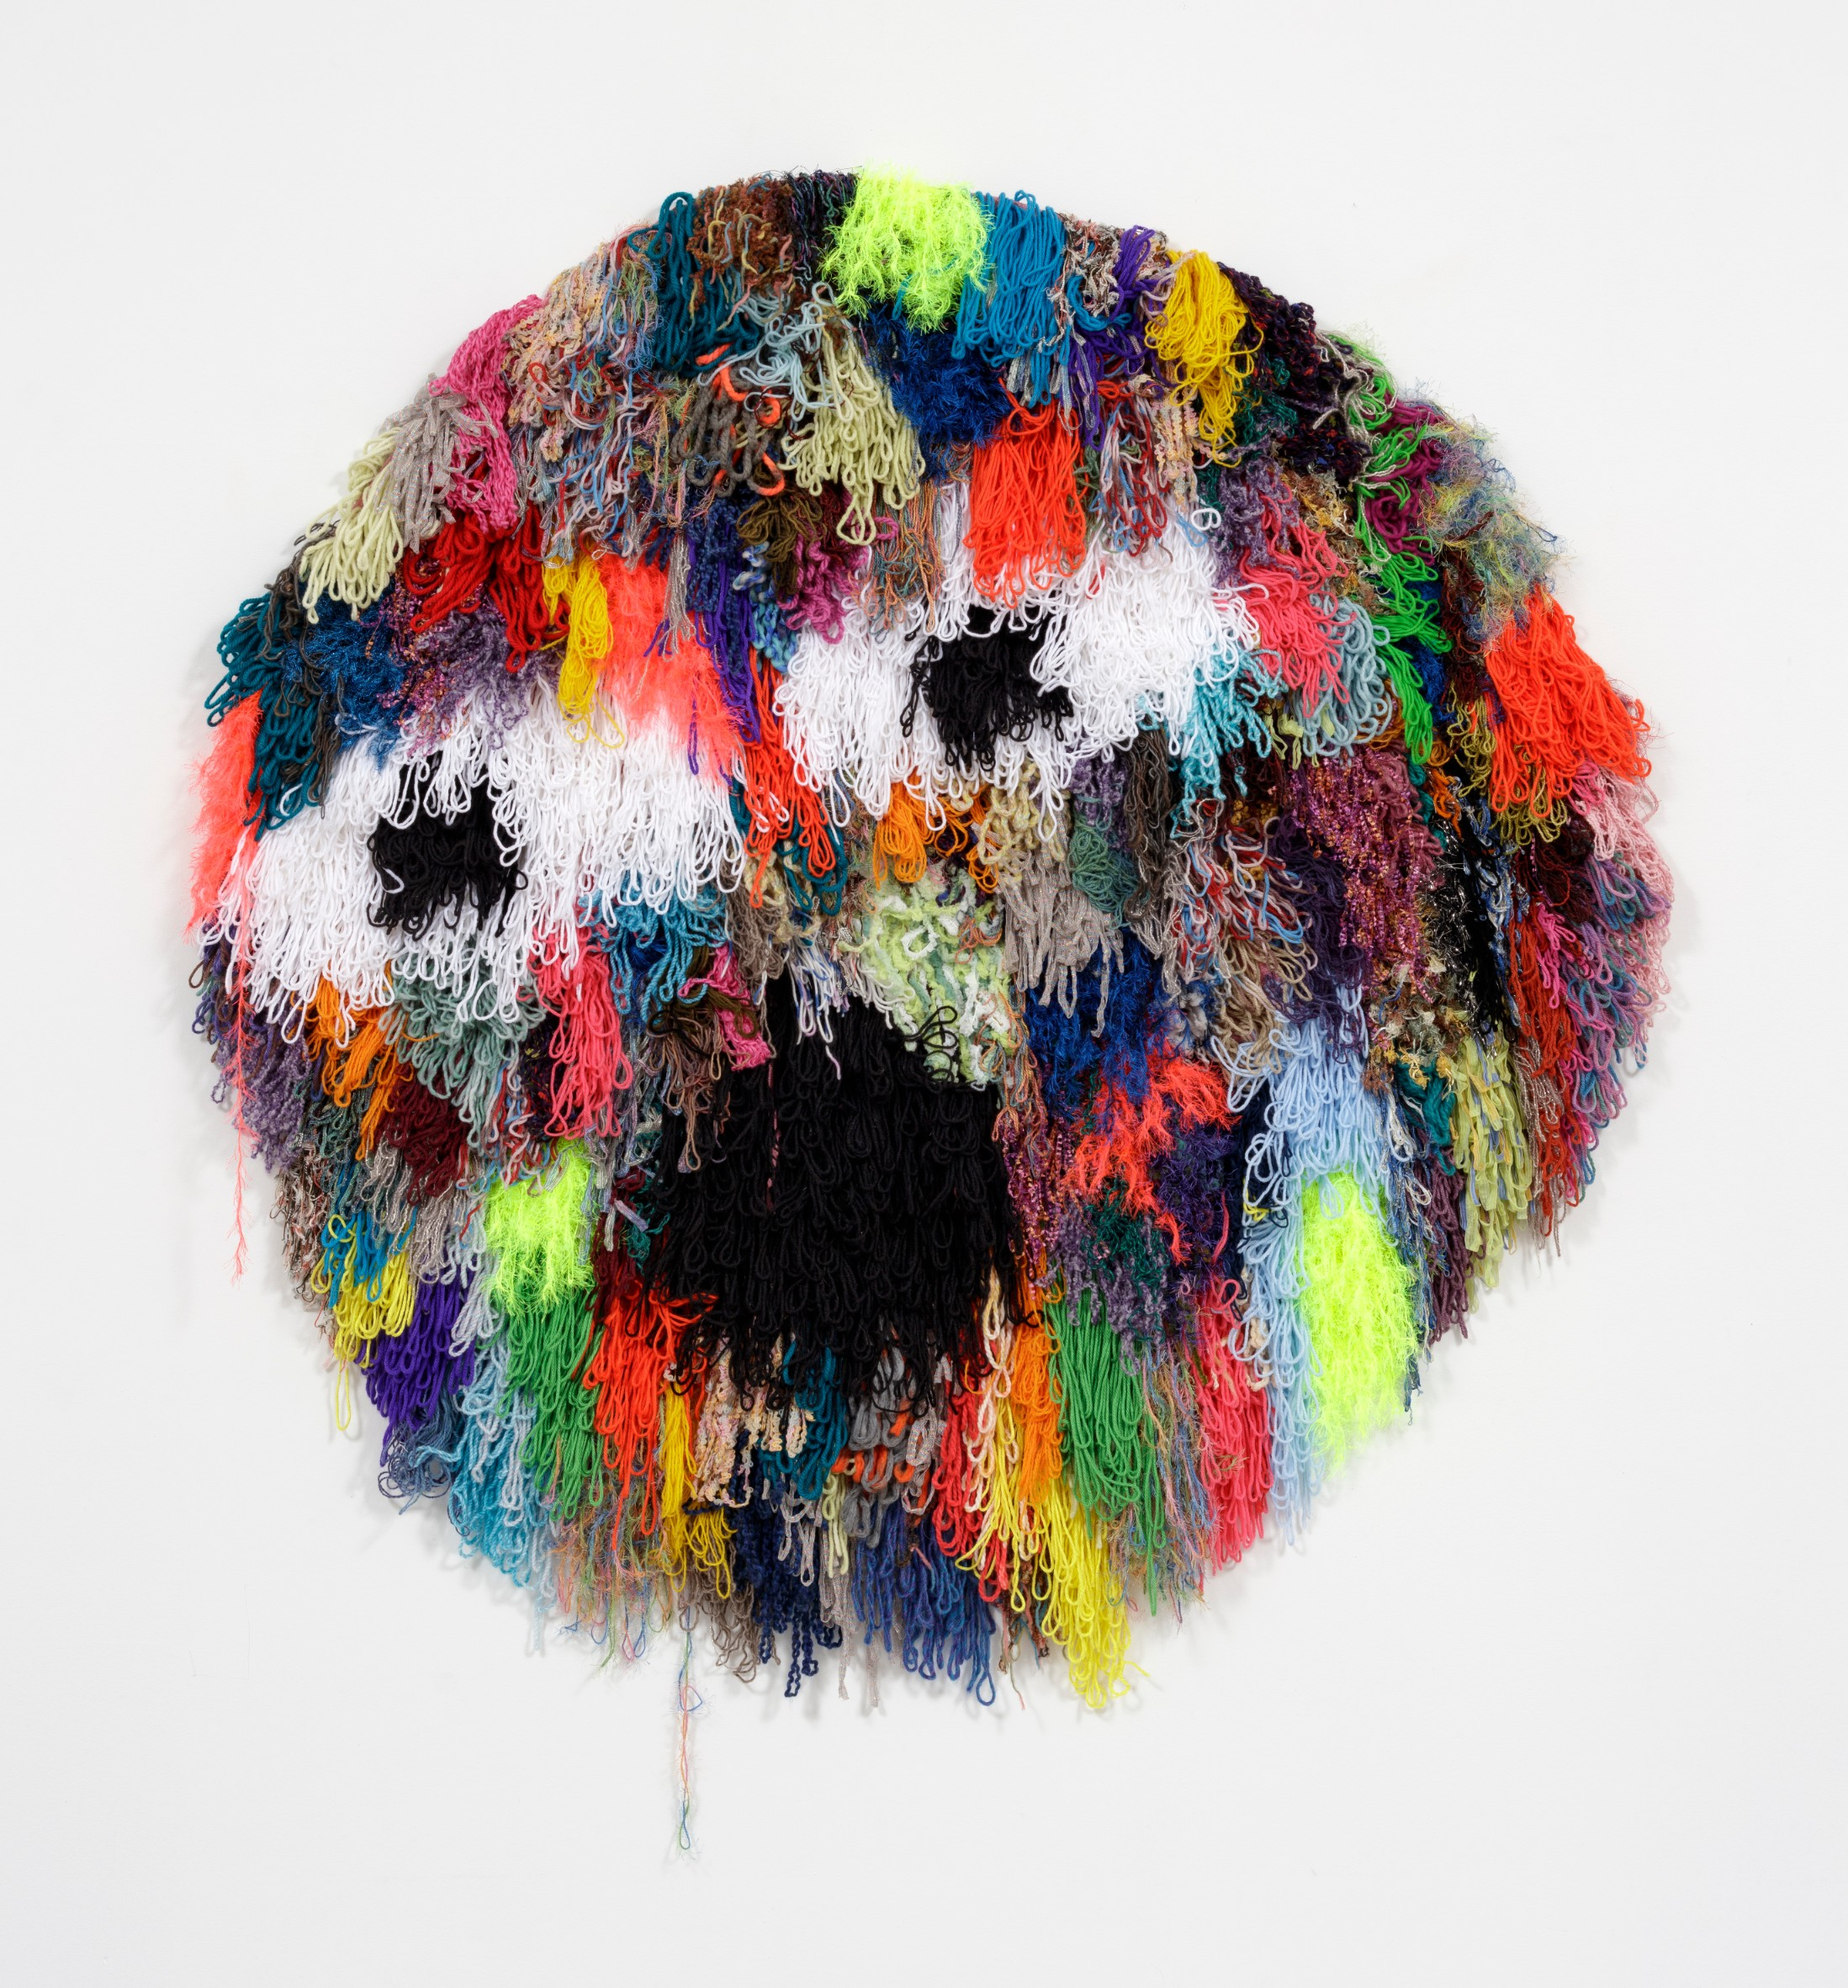 Hannah Epstein. <m>Planet Drug Cocktail</em>, 2018. Acrylic, wool, polyester and burlap, 60 x 56 inches (152.4 x 142.2 cm)